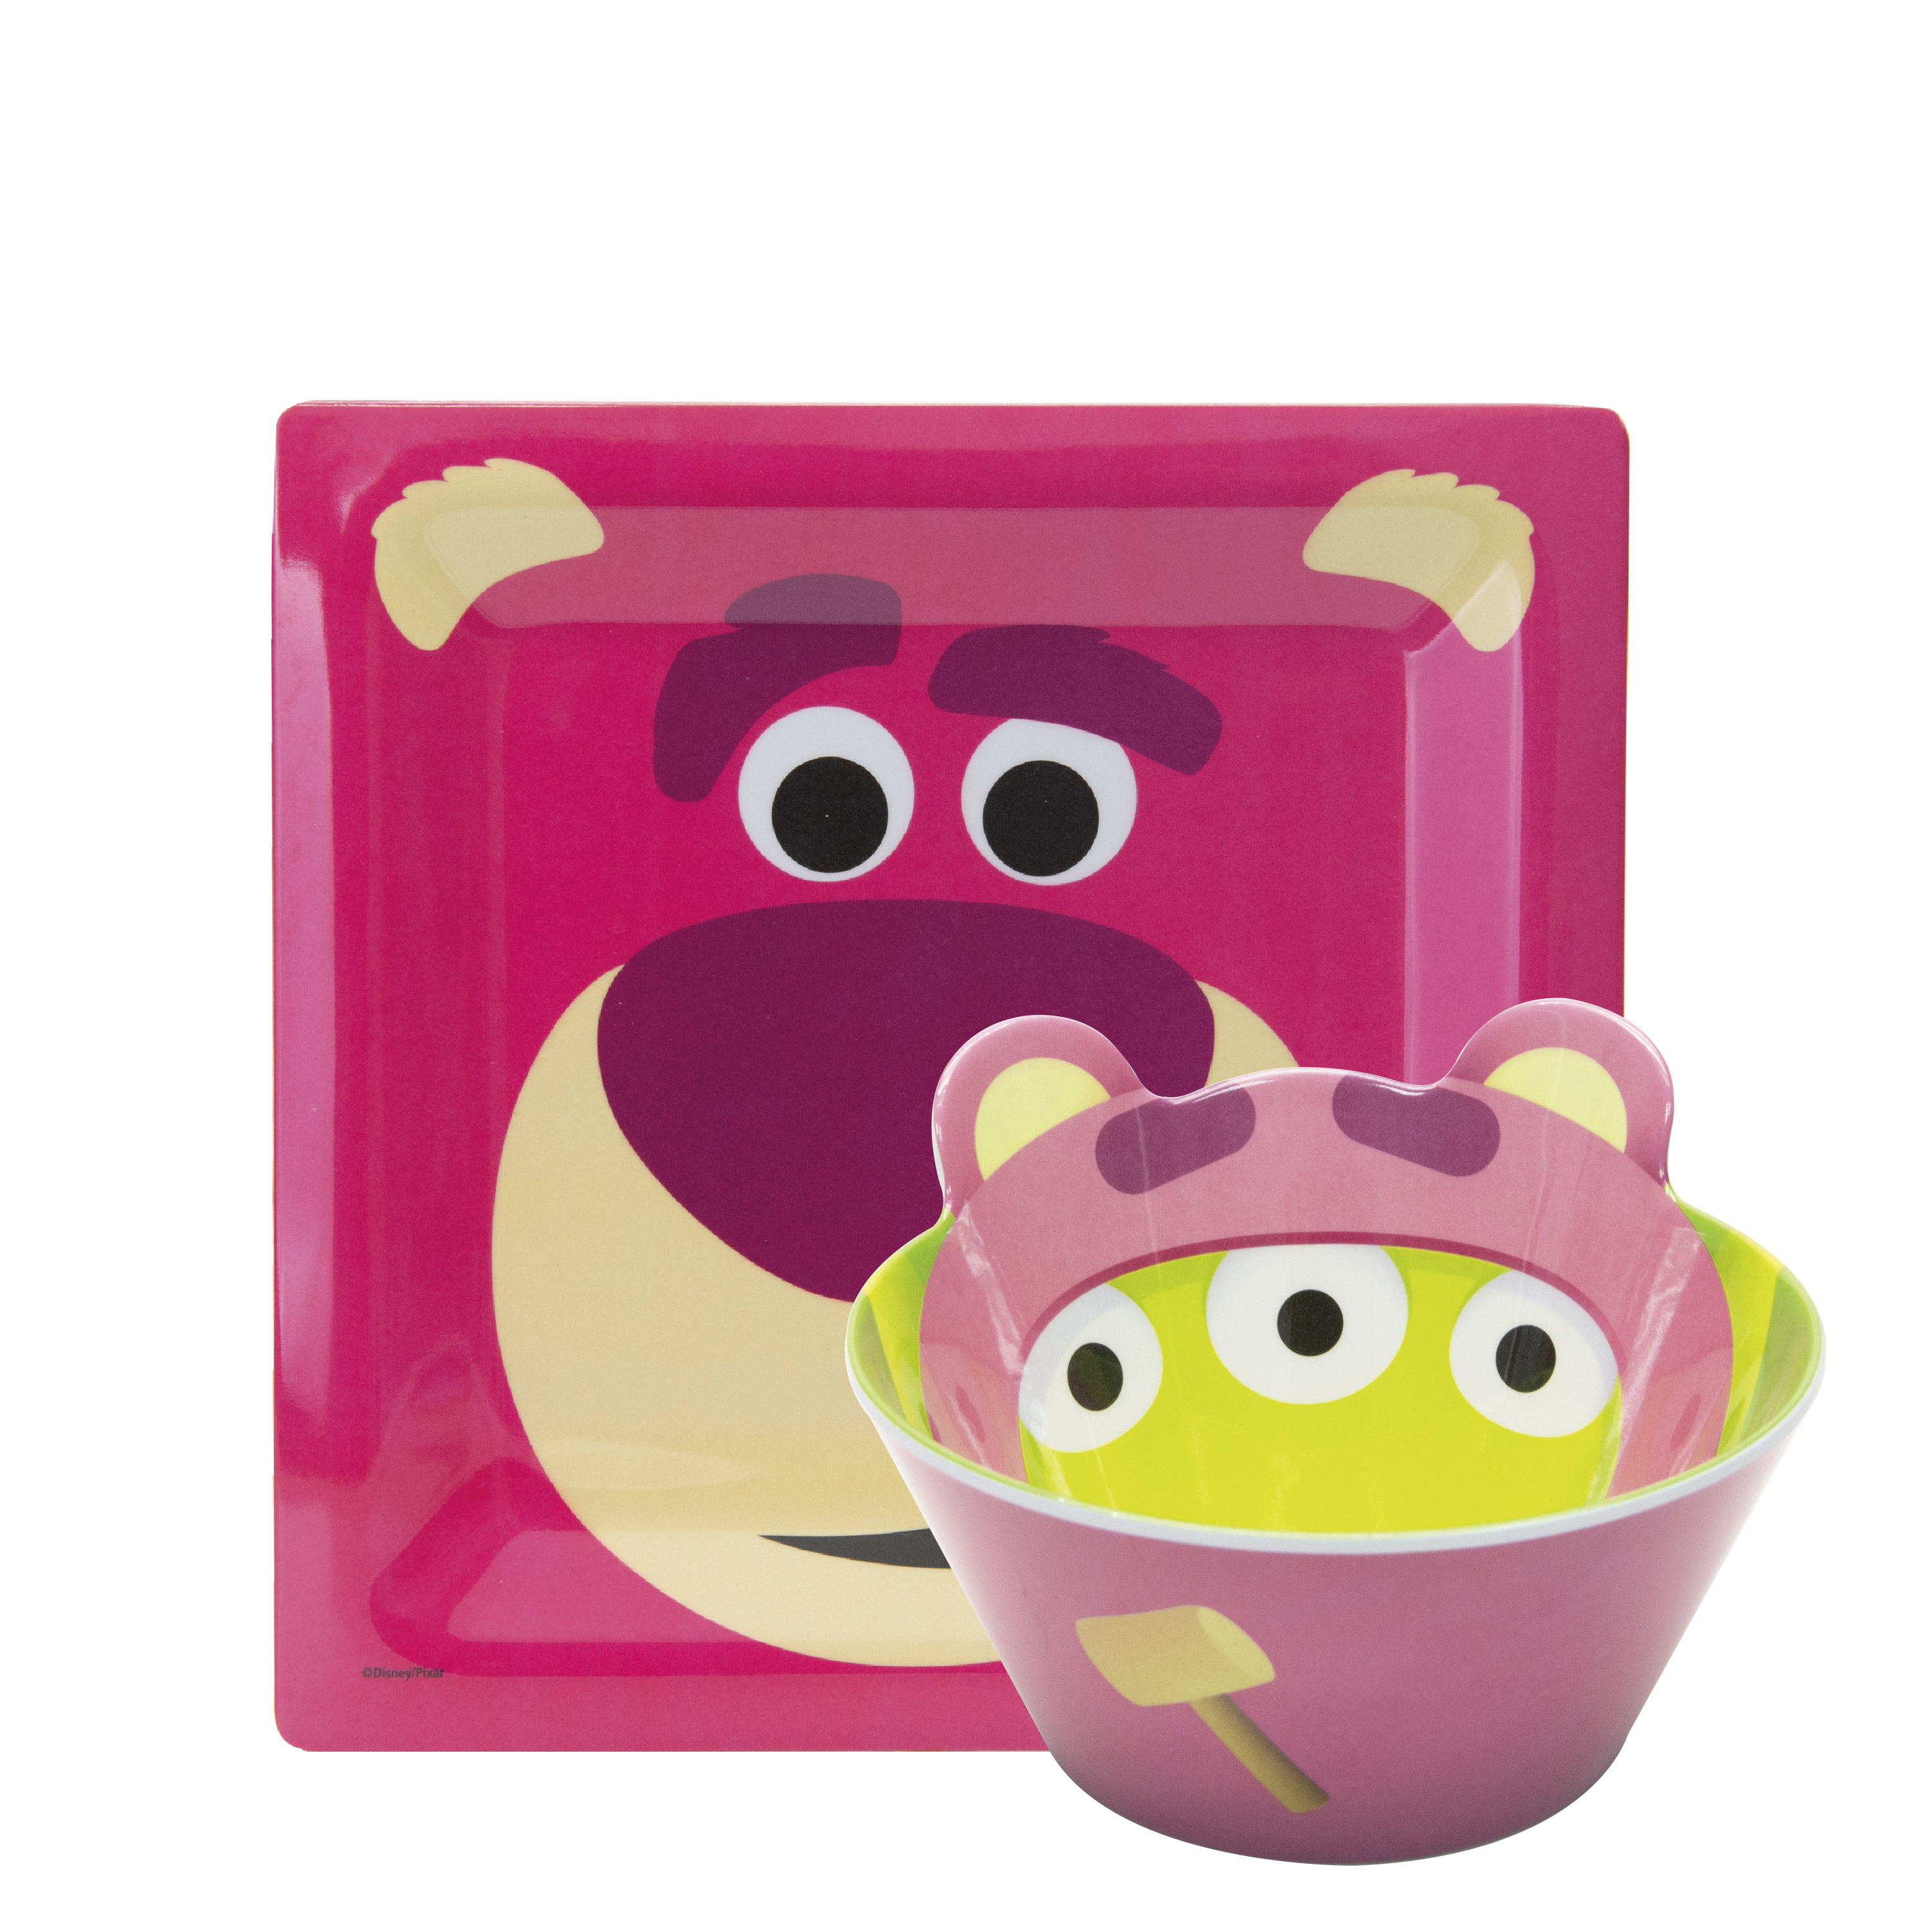 Disney and Pixar Toy Story 4 Plate and Bowl Set, Lotso, 2-piece set slideshow image 1